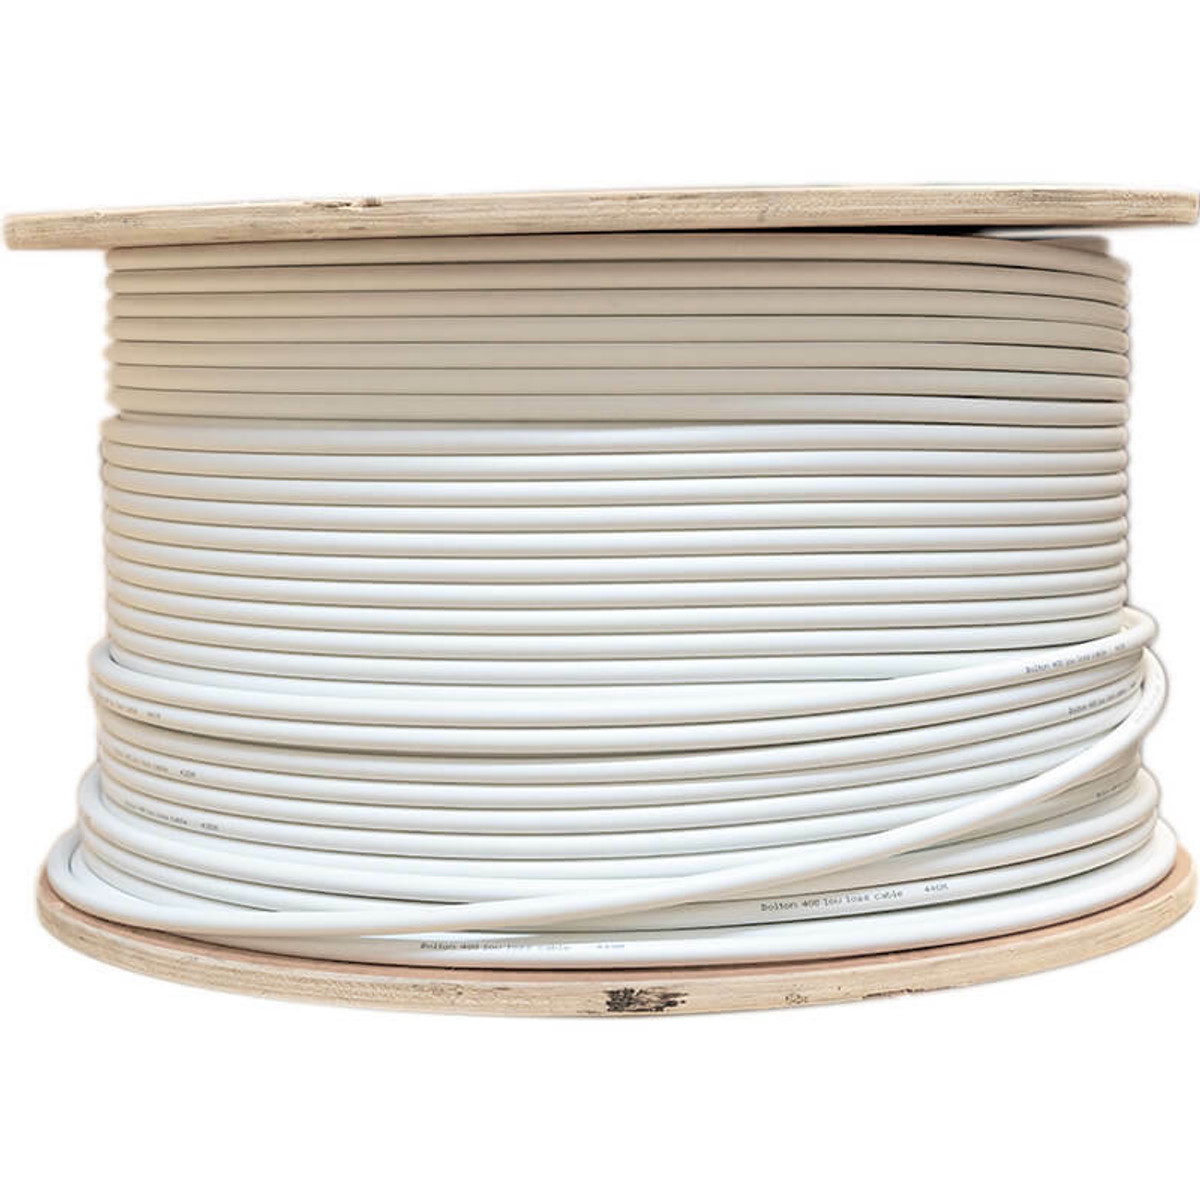 Bolton Tech Bolton Technical Bolton400 Ultra Low-Loss White Cable or Priced Per Foot